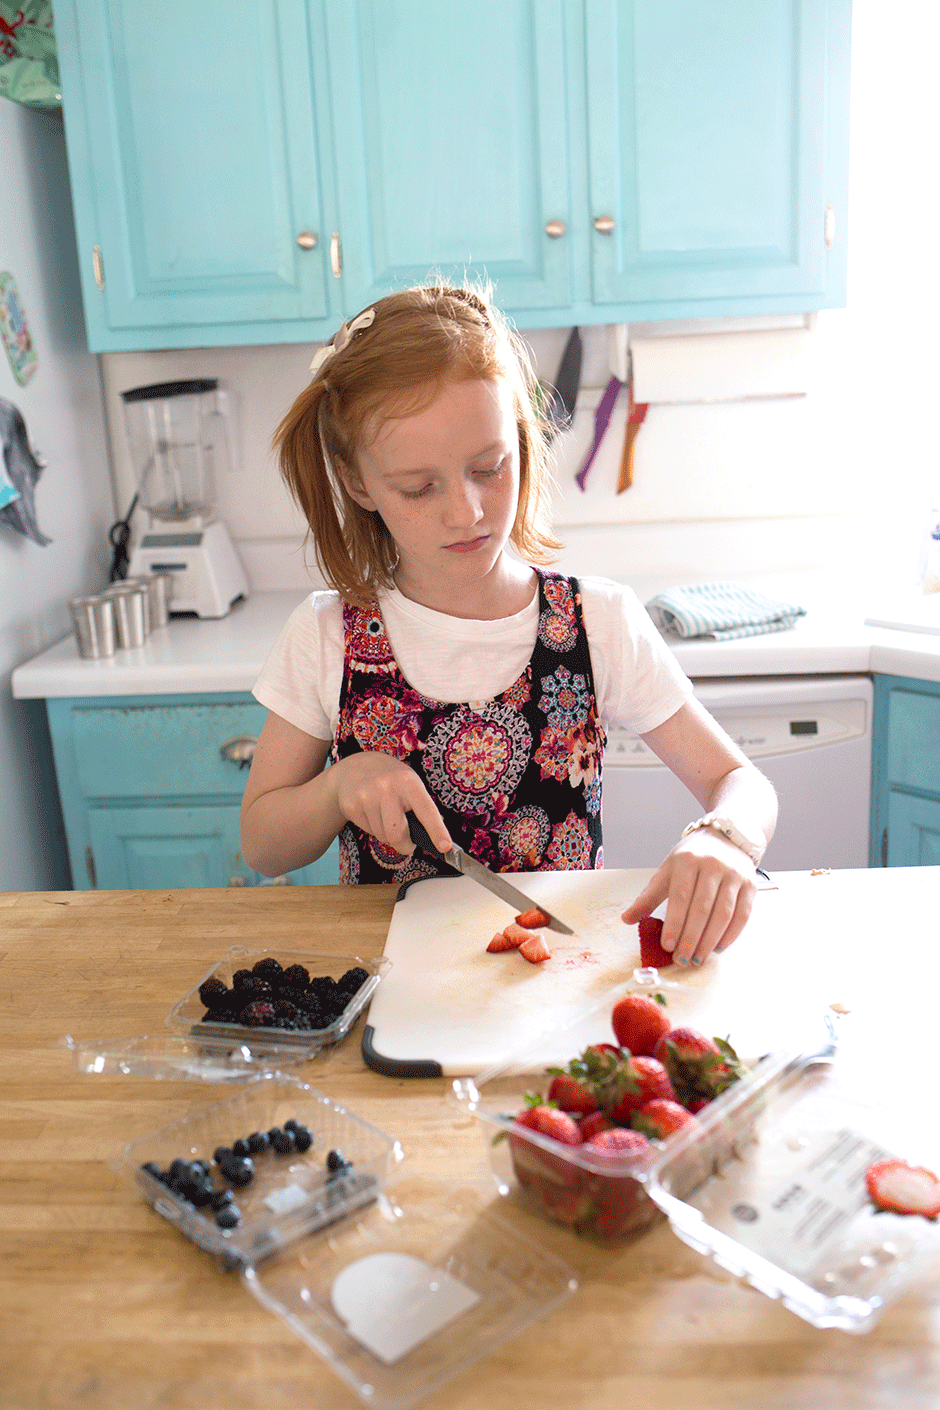 Teach your children to help out in the kitchen safely and enjoyably! By giving them age appropriate tasks and allowing them to help when they're willing, kids grow up with valuable skills and an excitement to participate in mealtime prep. Even the smallest children can help in the kitchen!